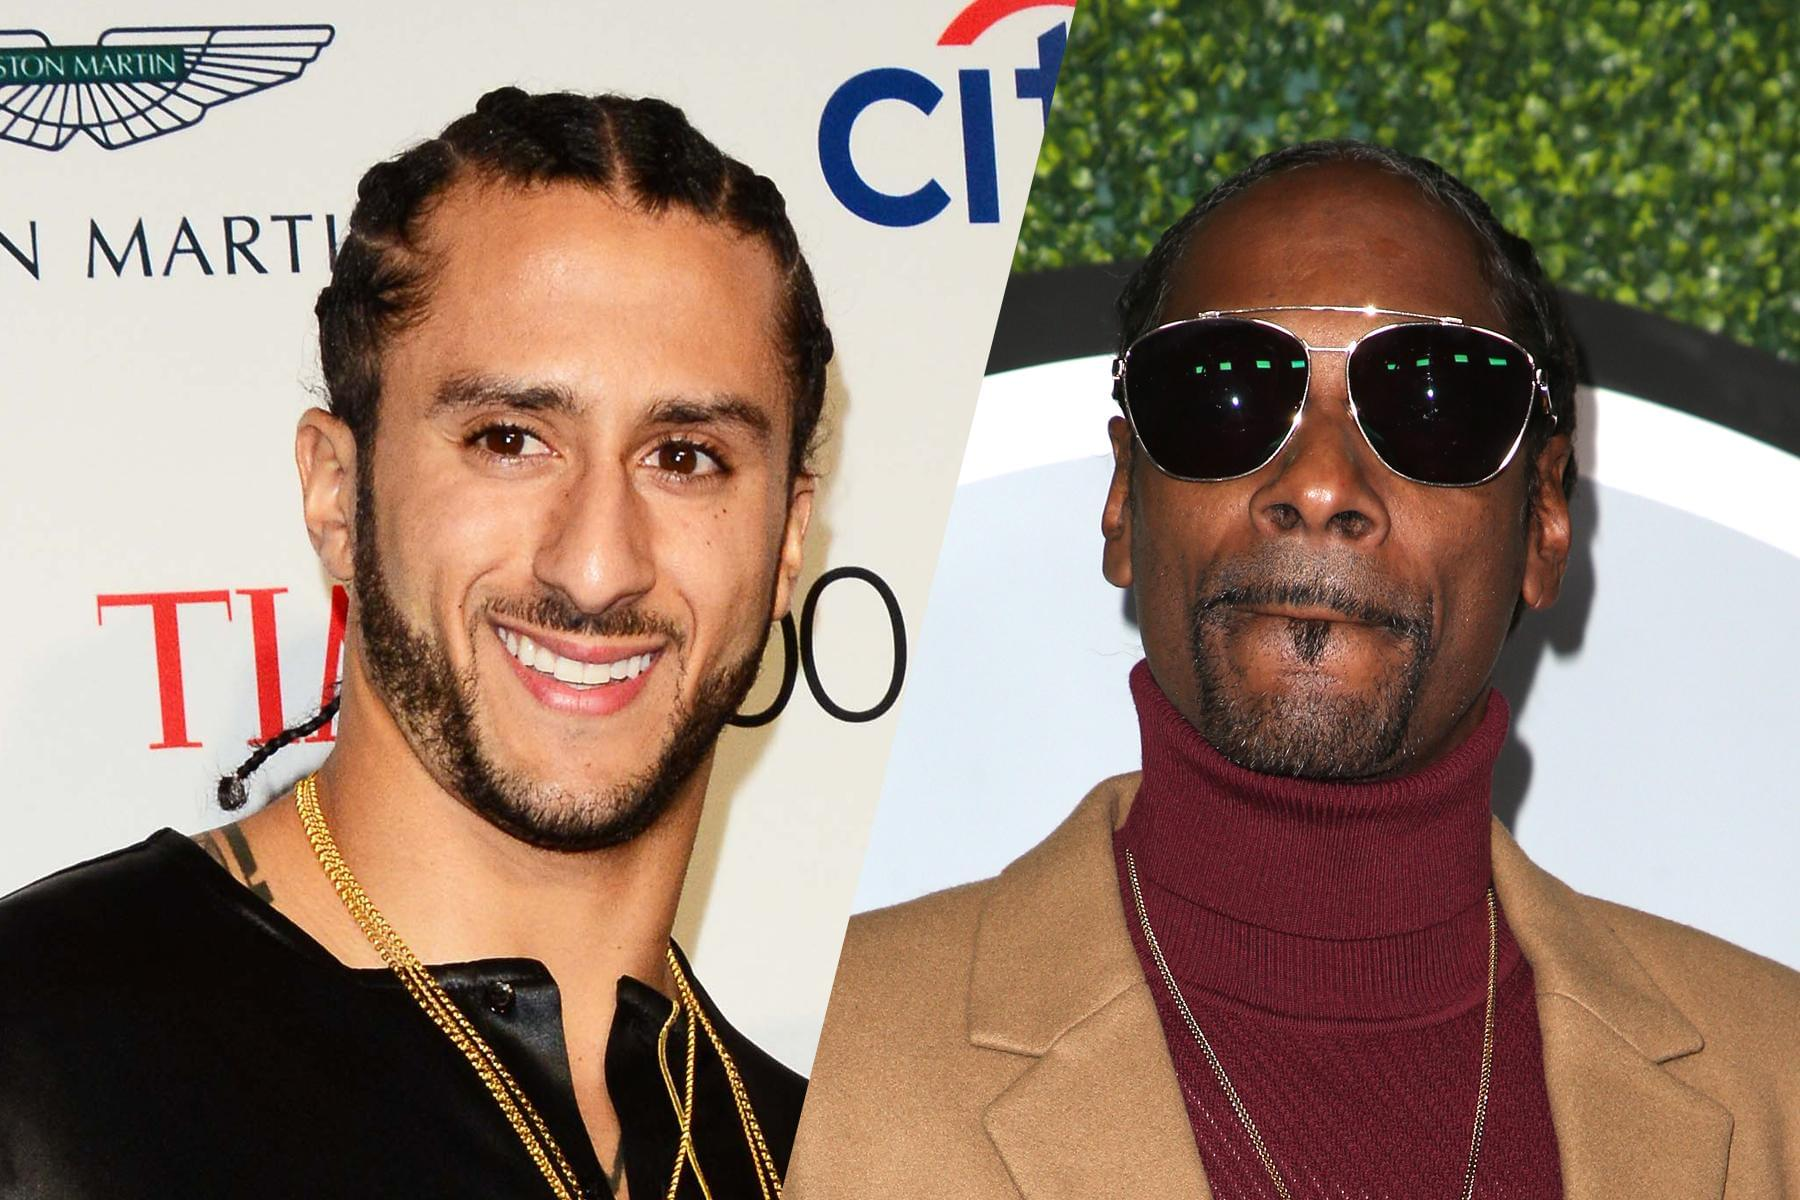 Snoop Dogg Urges Steelers To Sign Colin Kaepernick